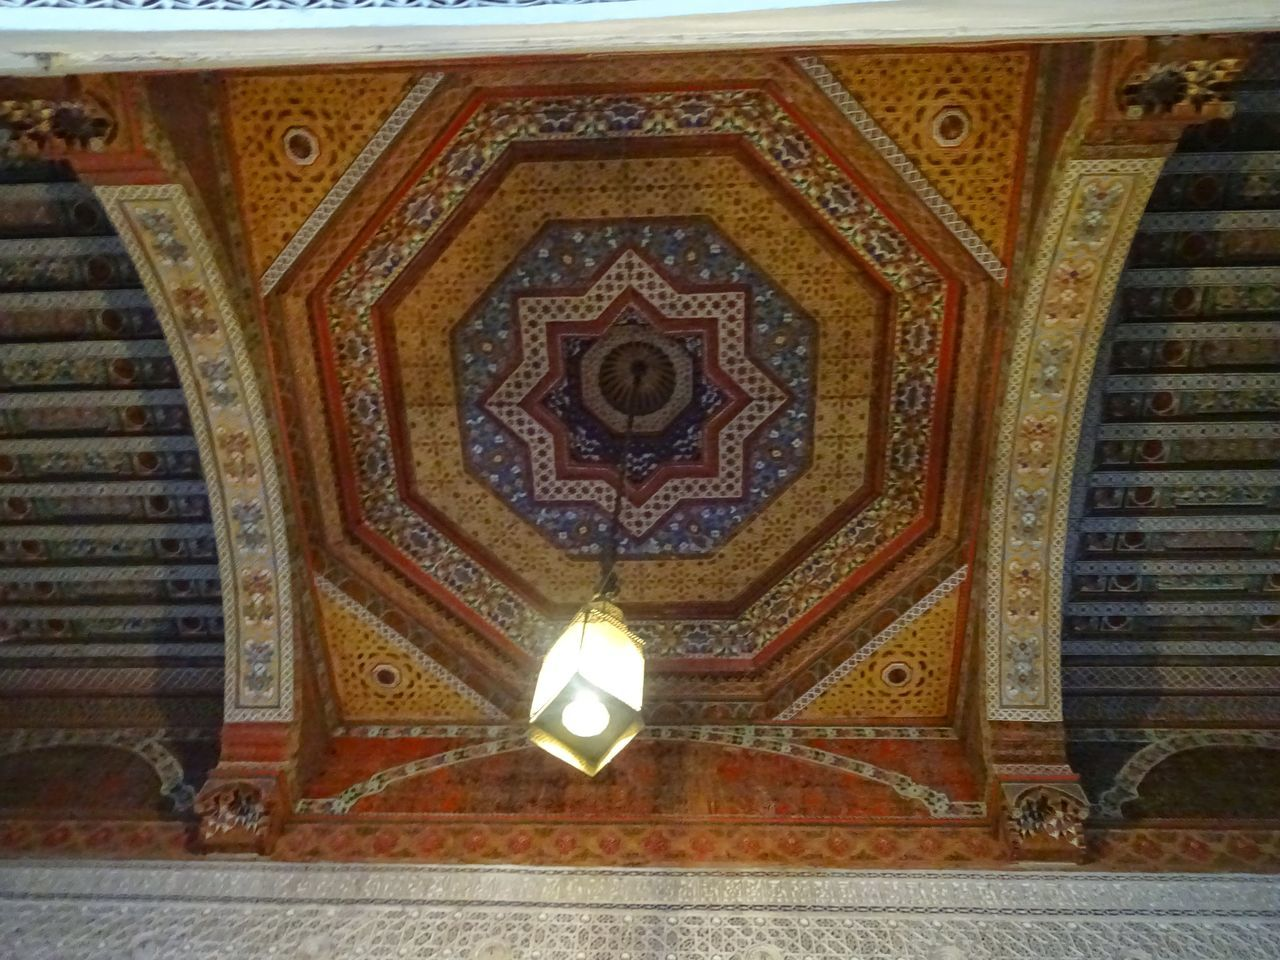 indoors, design, art and craft, ceiling, religion, low angle view, pattern, ornate, no people, spirituality, place of worship, architecture, illuminated, built structure, day, close-up